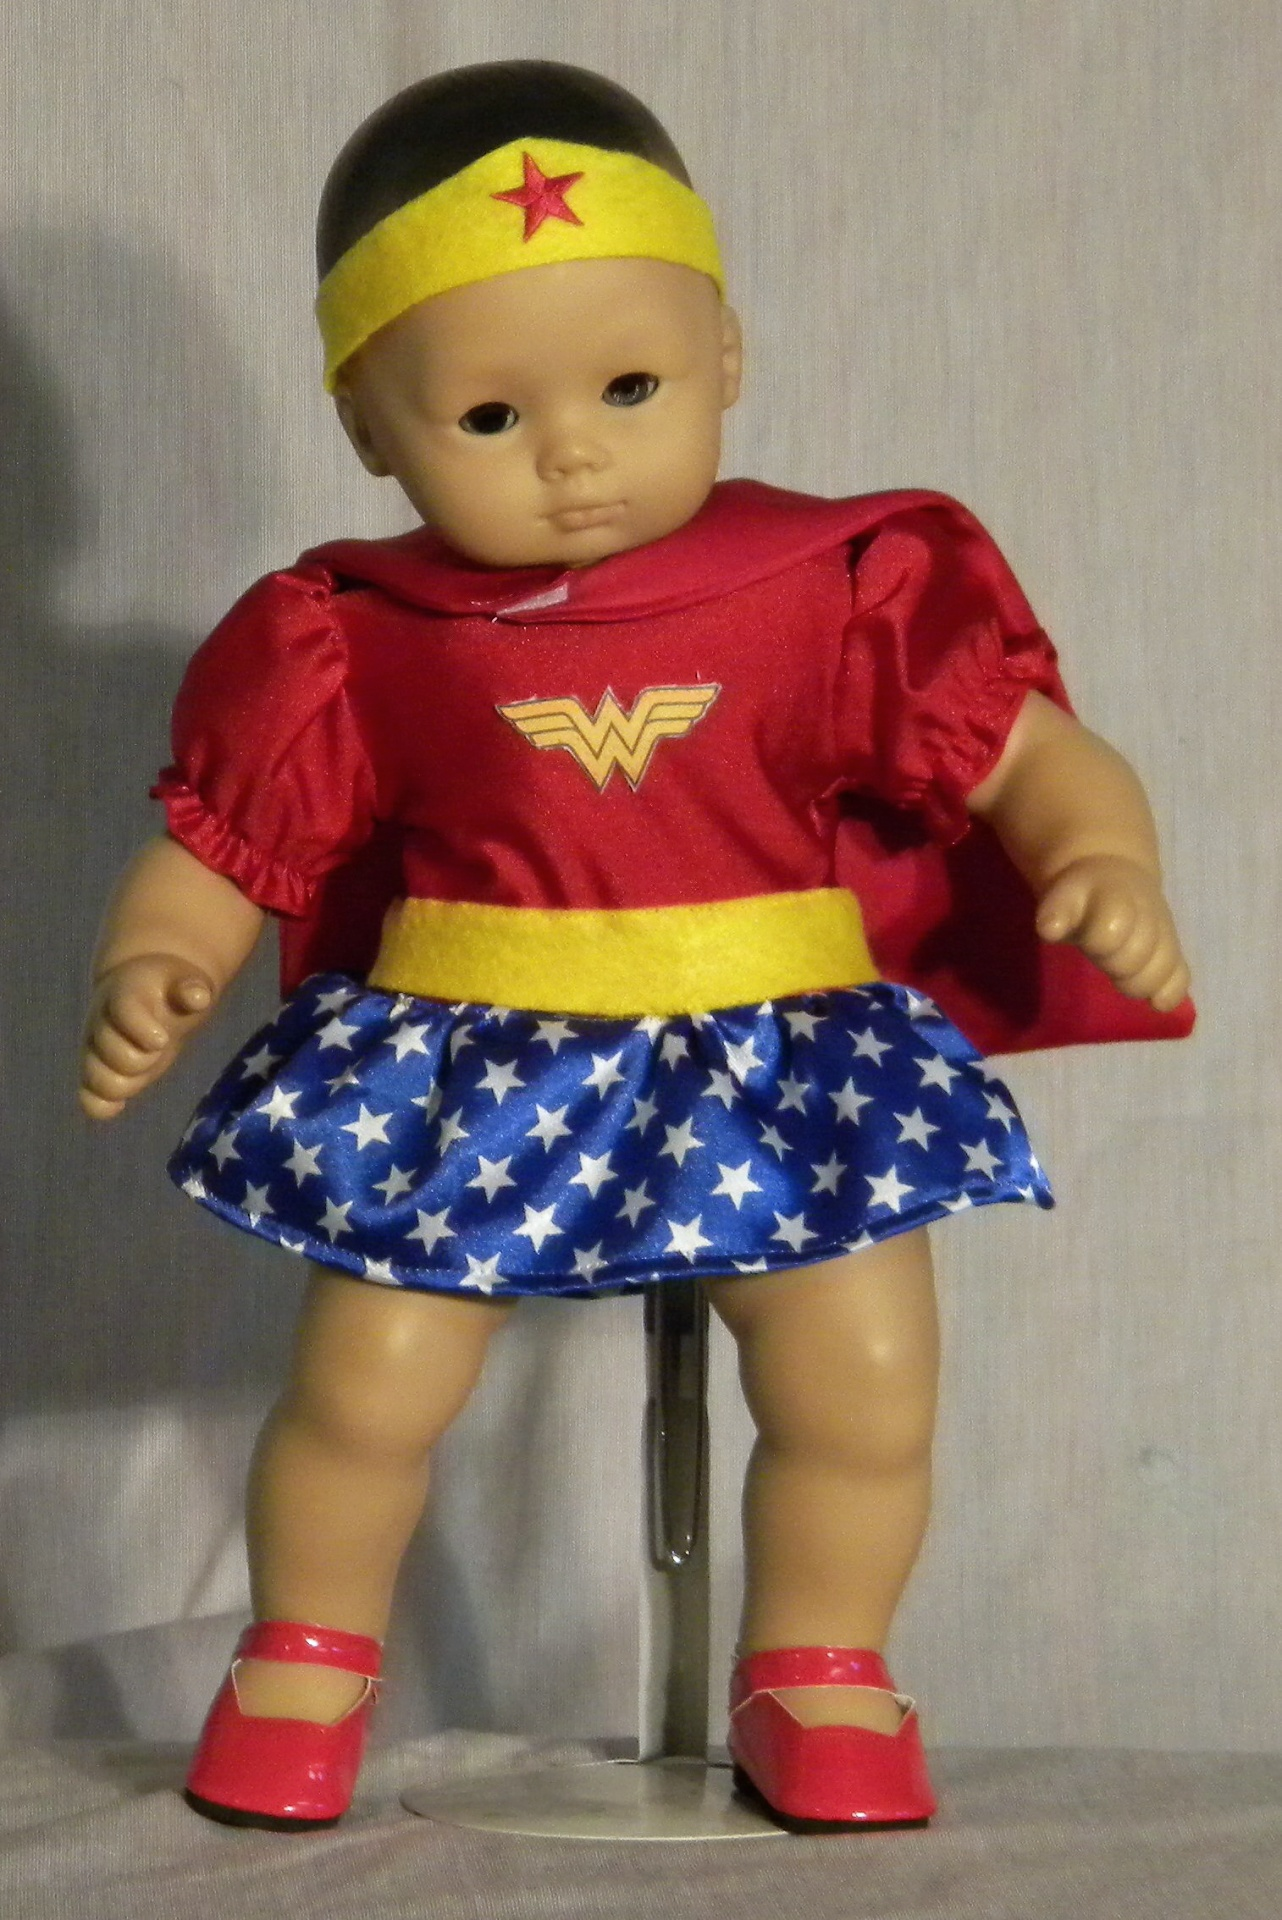 15 Inch Baby Doll Clothes Dolly Duds